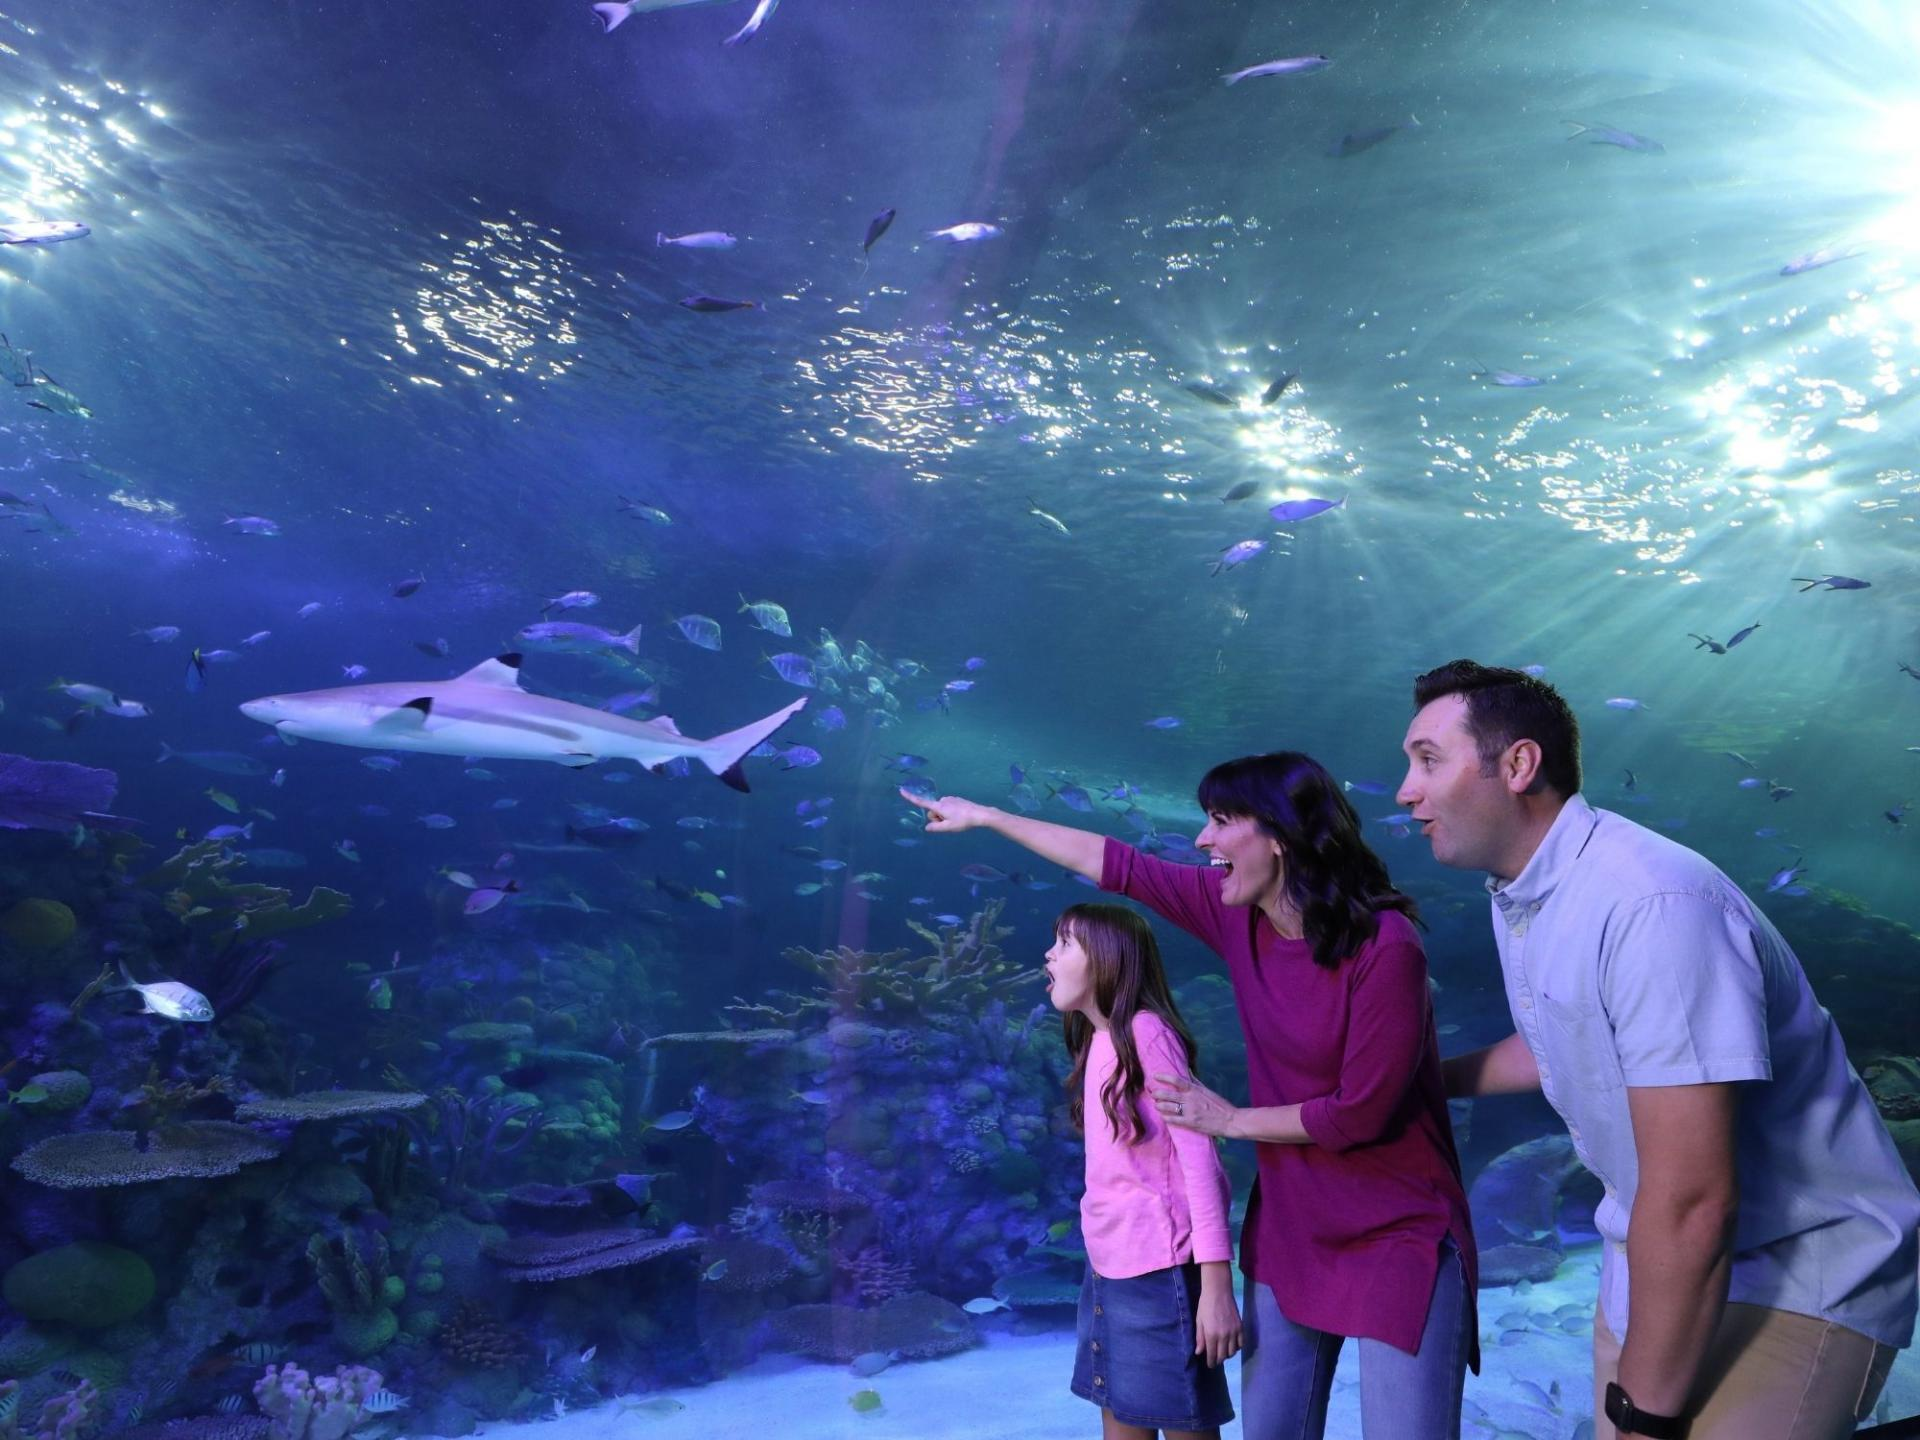 family enjoys the branson aqaurium at the boardwalk pointing at sharks